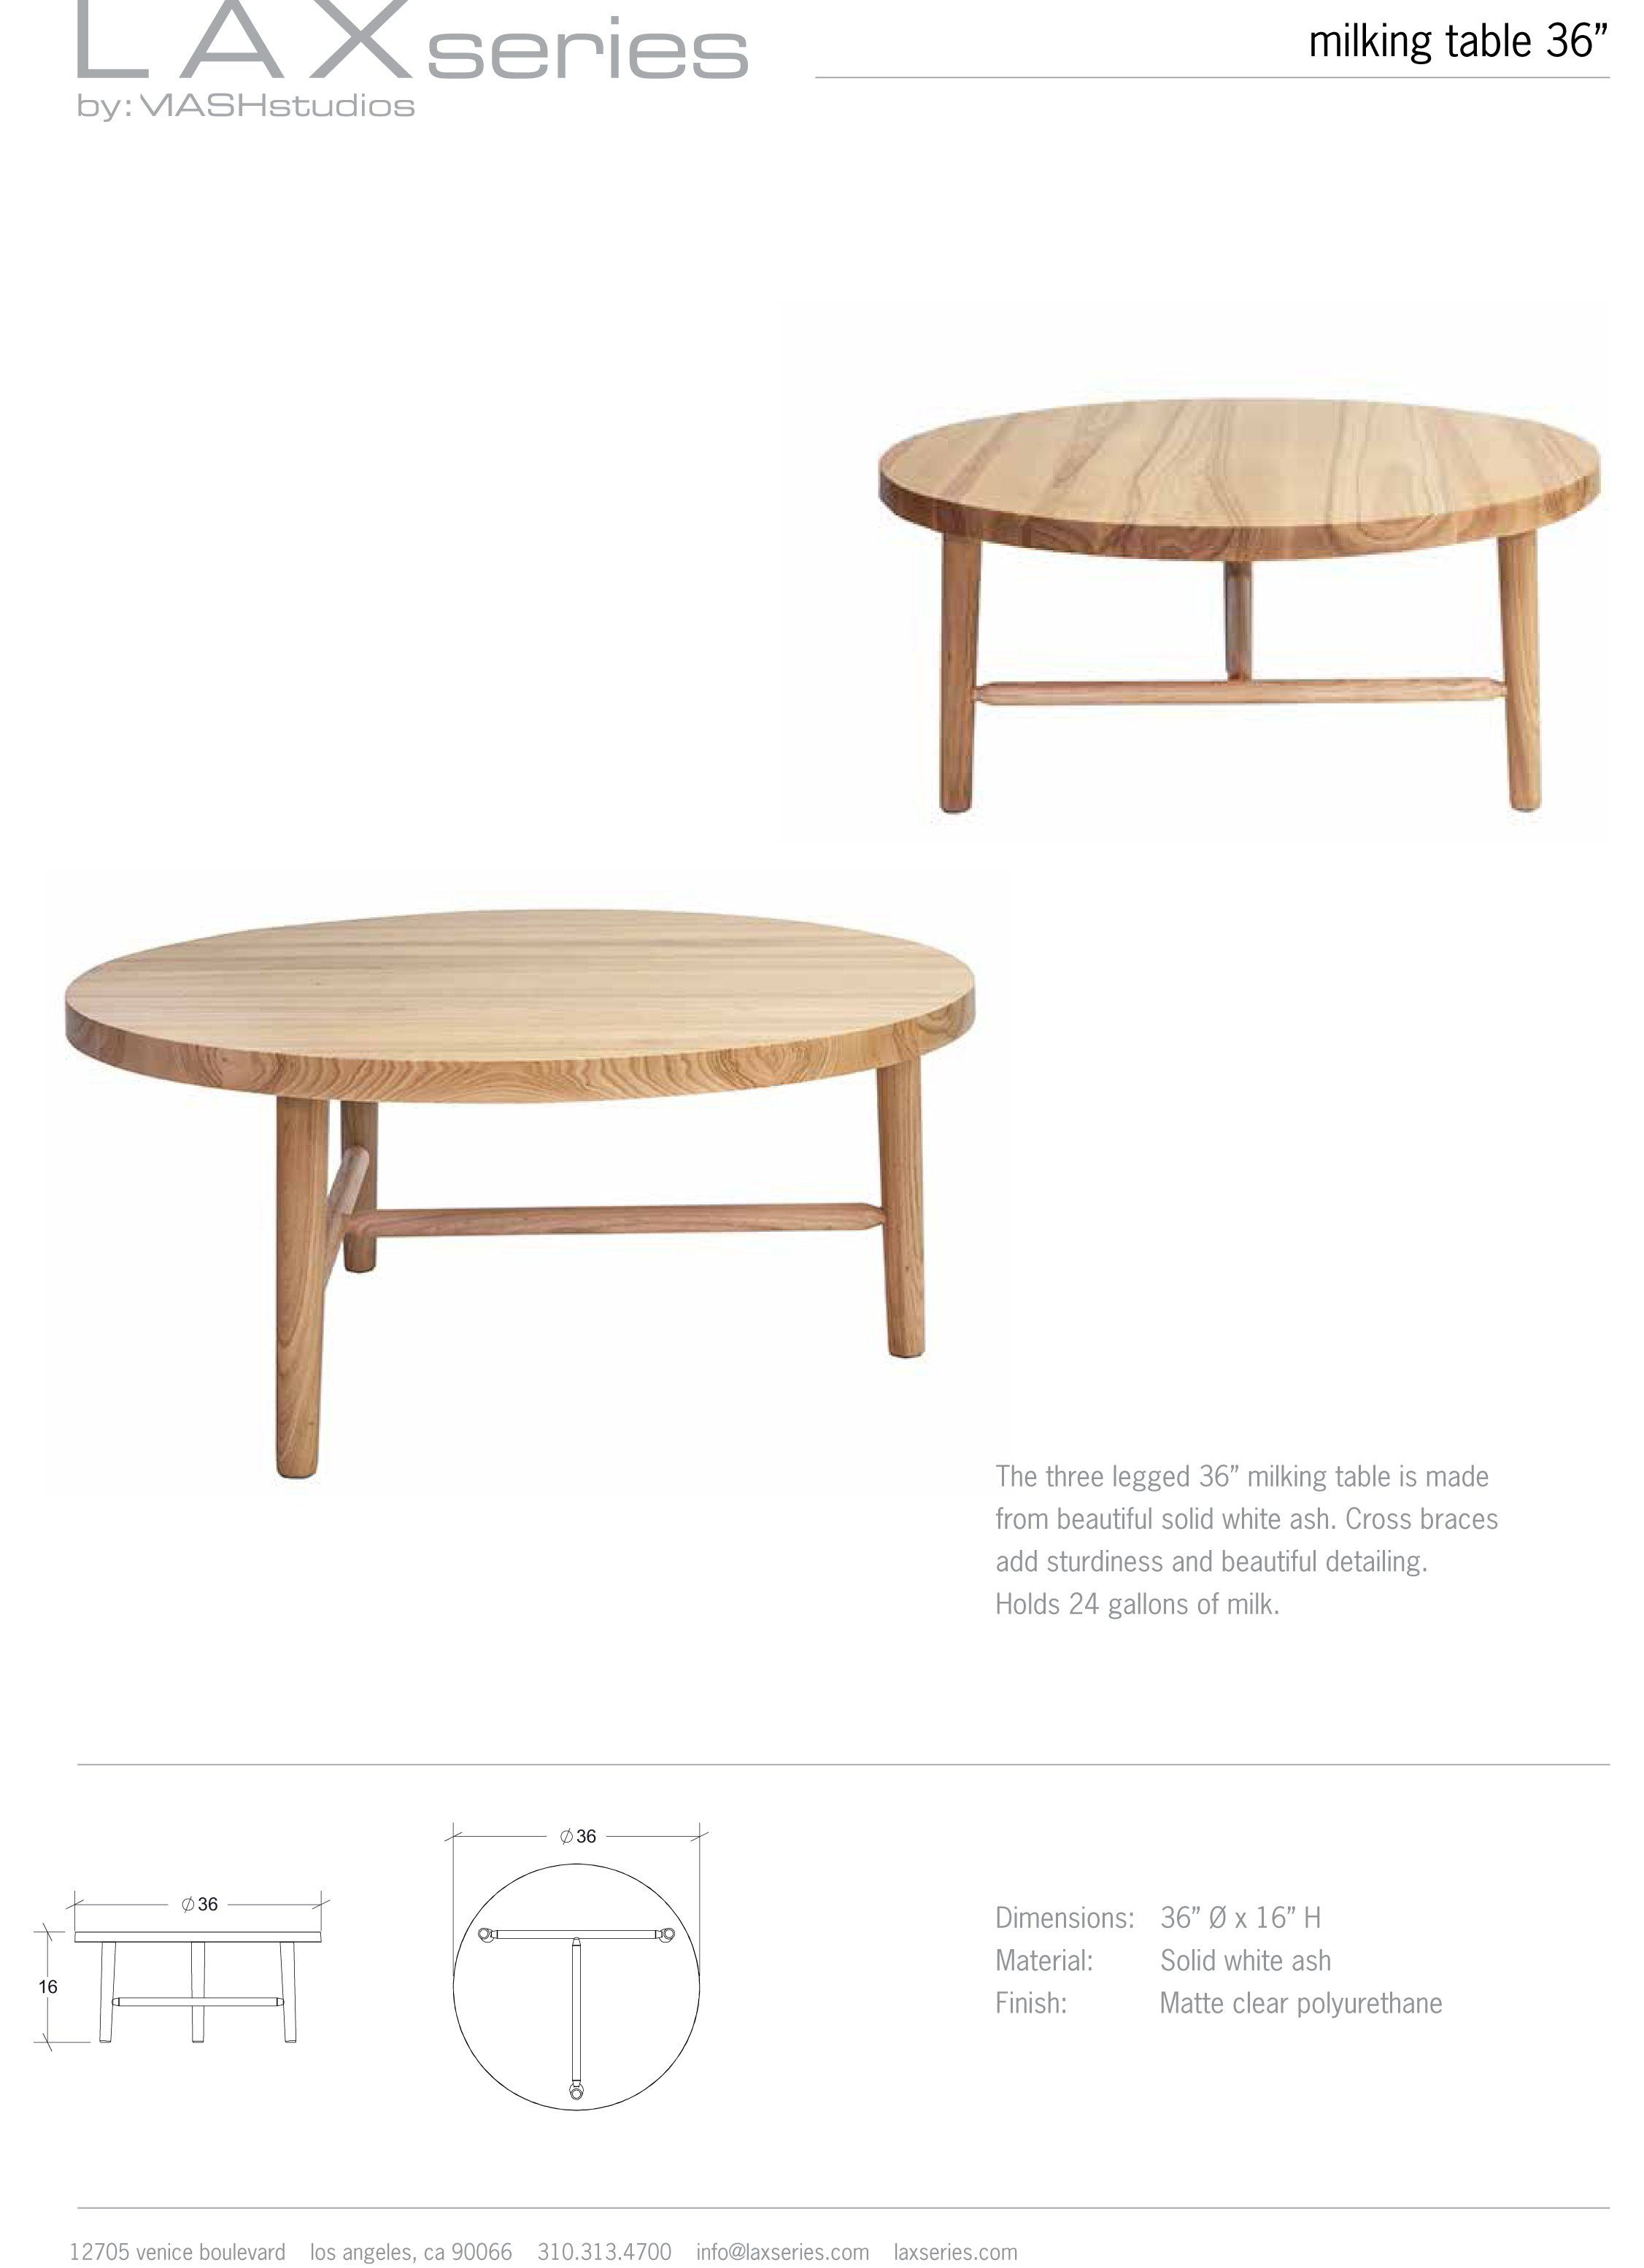 Milking Table Lax Series 36 Dia In 2021 Table Japanese Interior Design Coffee Table [ 3108 x 2253 Pixel ]